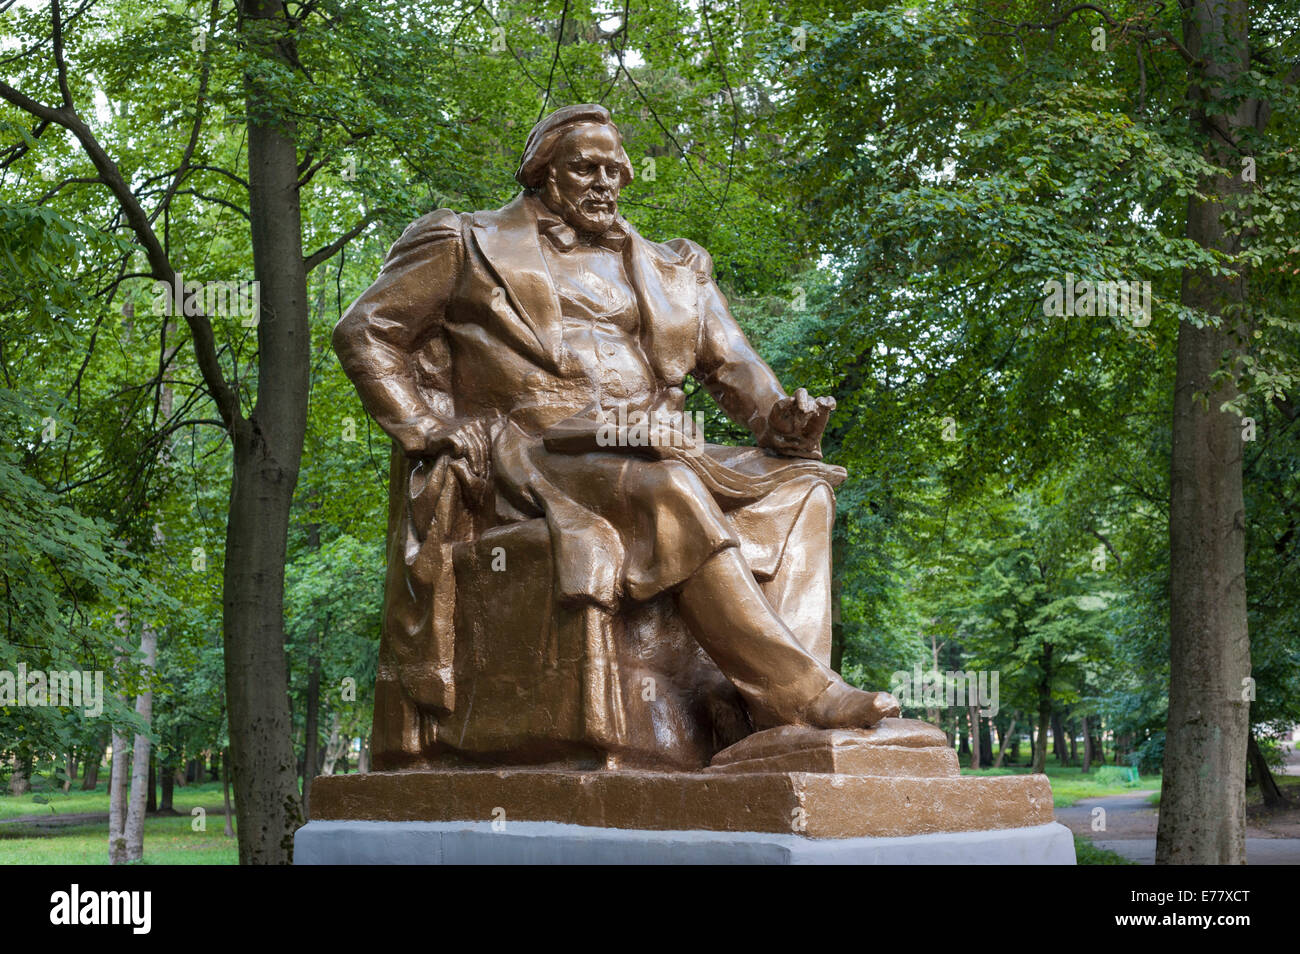 Monument to Mikhail Ivanovich Glinka, Russian composer, bronze on a stone pedestal in Jakobsruh Park, new park design - Stock Image